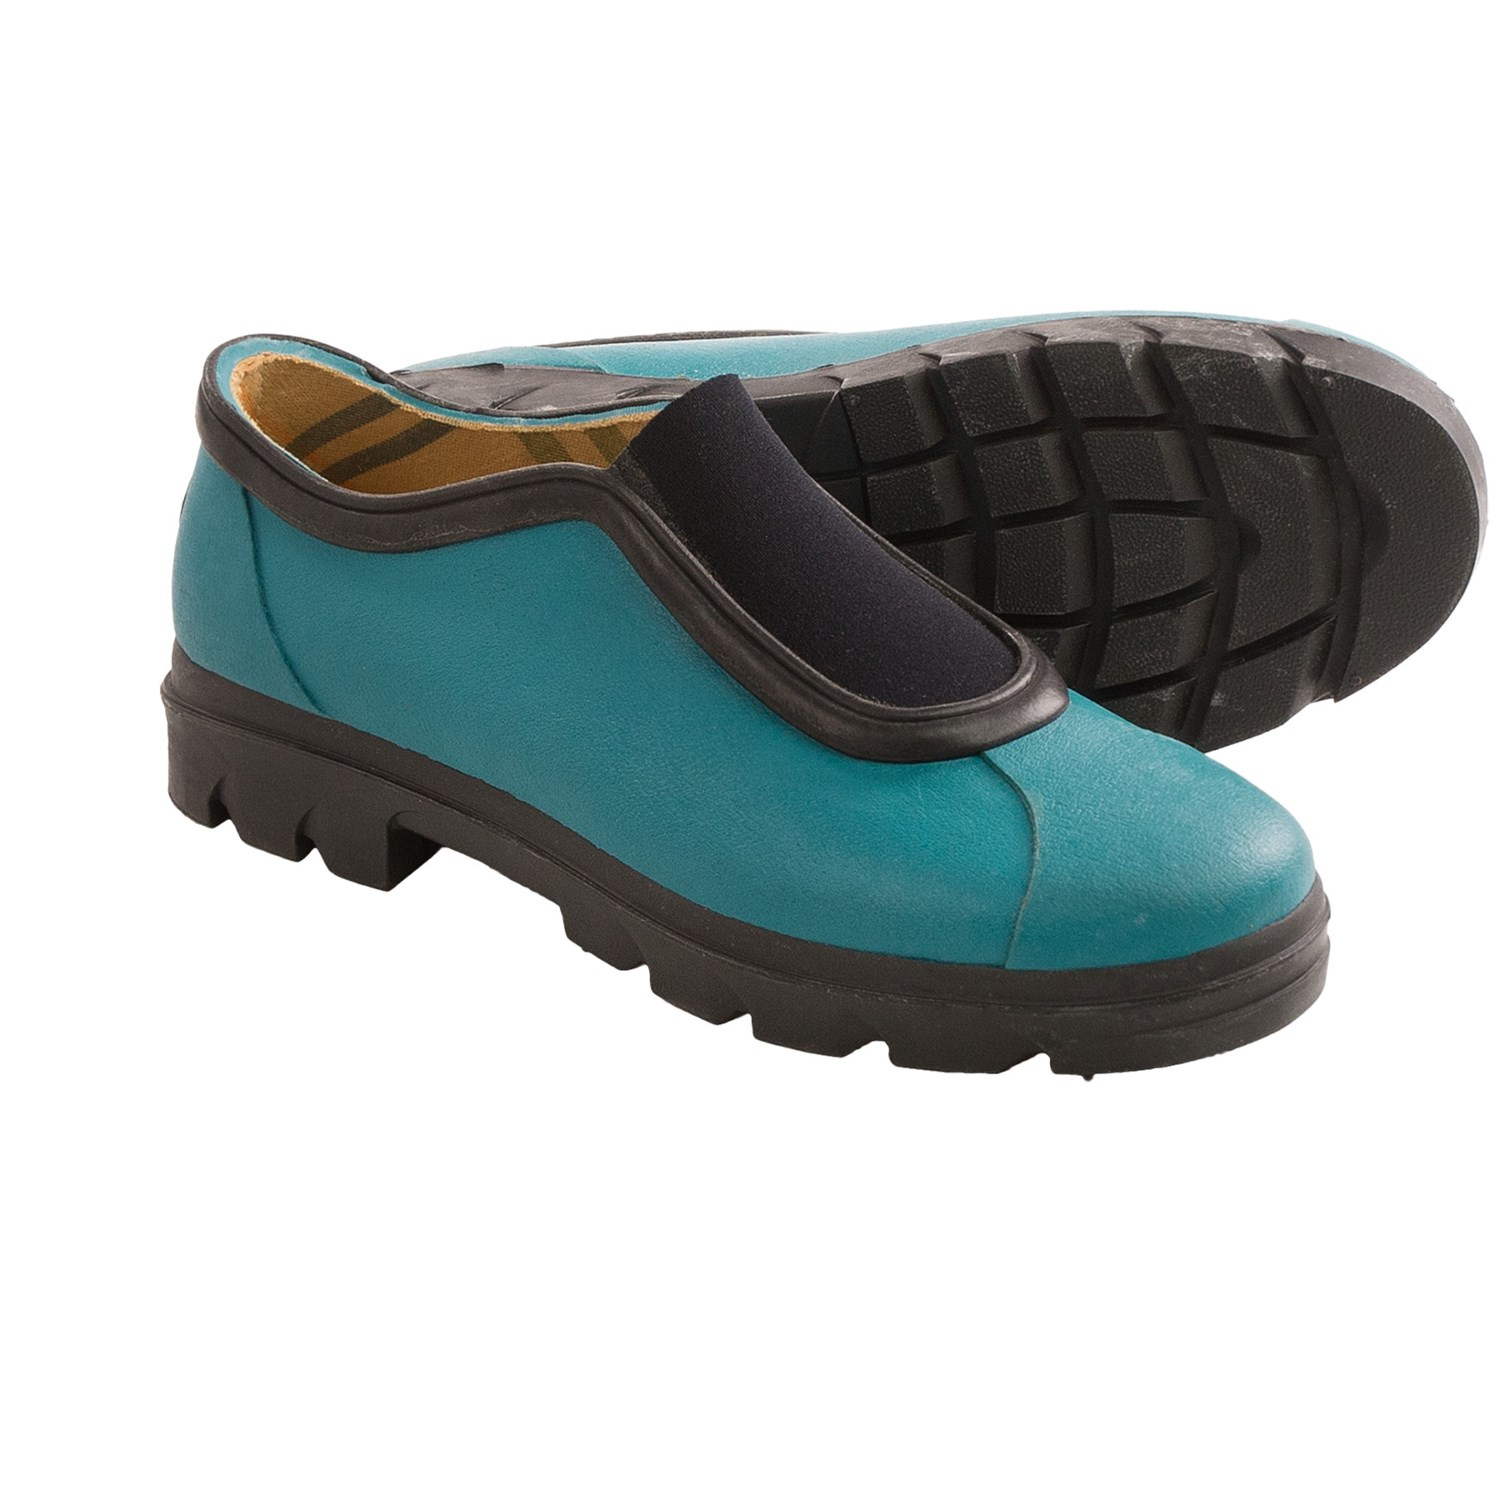 Muck Boots Women's Muckster II Waterproof Gardening Shoe Purple The Women's Purple Garden Shoes by Muck Boots add a bright splash of color to these waterproof outdoor shoes. Now built in true women's sizes they are the new and improved version of the original Muck Boots Daily Garden Shoe.